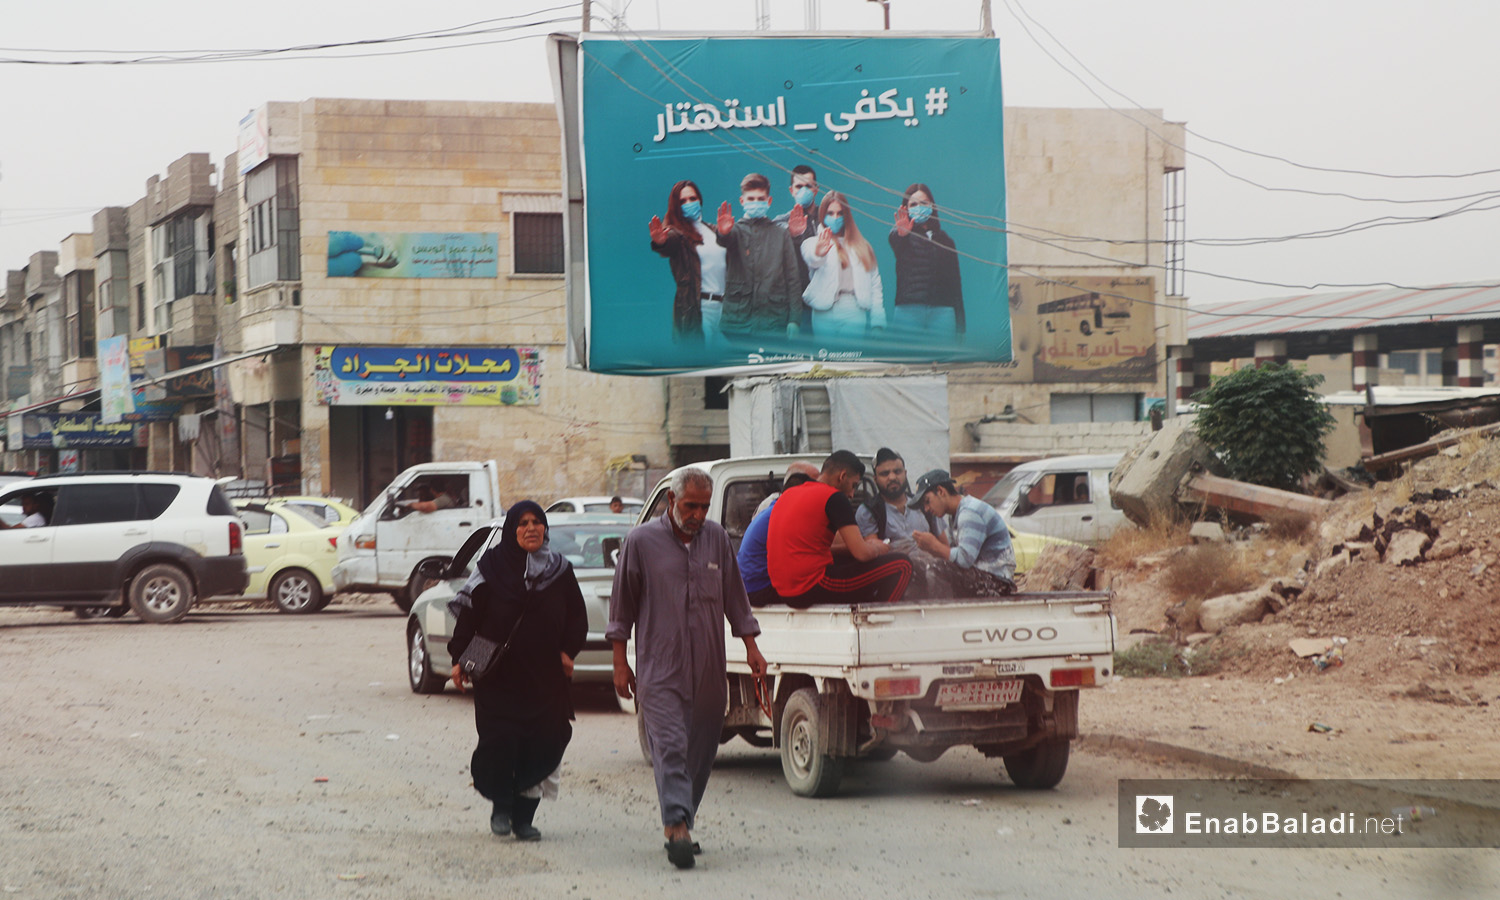 People walking in a street in al-Raqqa city. In the picture, a road sign calls the city residents to follow the protection measures of coronavirus (COVID-19) - September 2020 (Enab Baladi - Abdul Aziz al-Saleh)